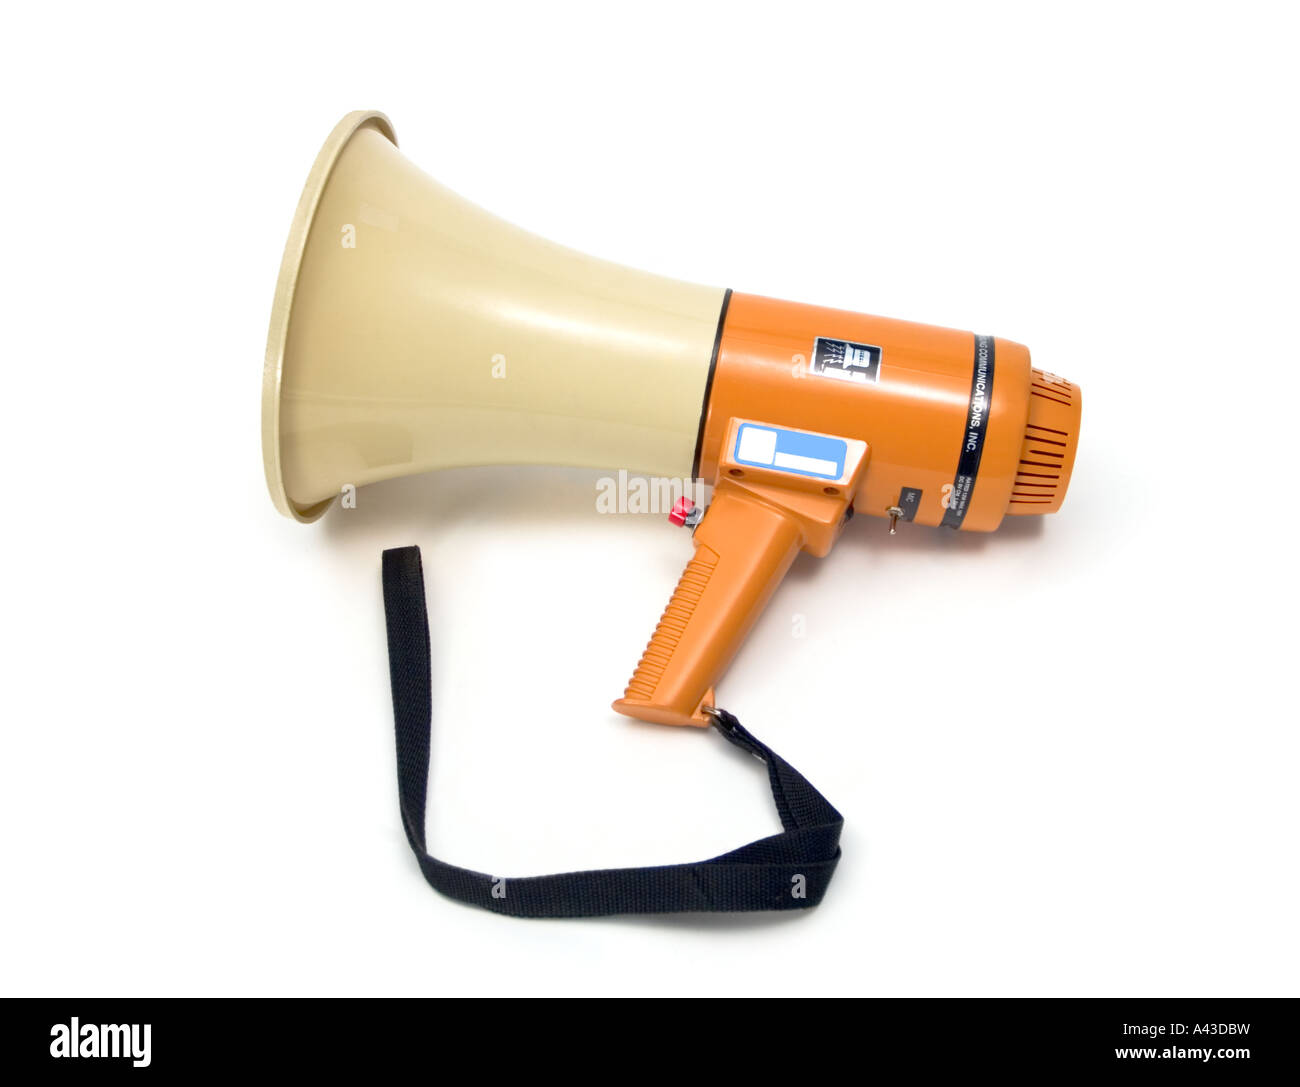 Loud Hailer or Megaphone, like a movie director would use, against a white background i.e. Deepetched - Stock Image